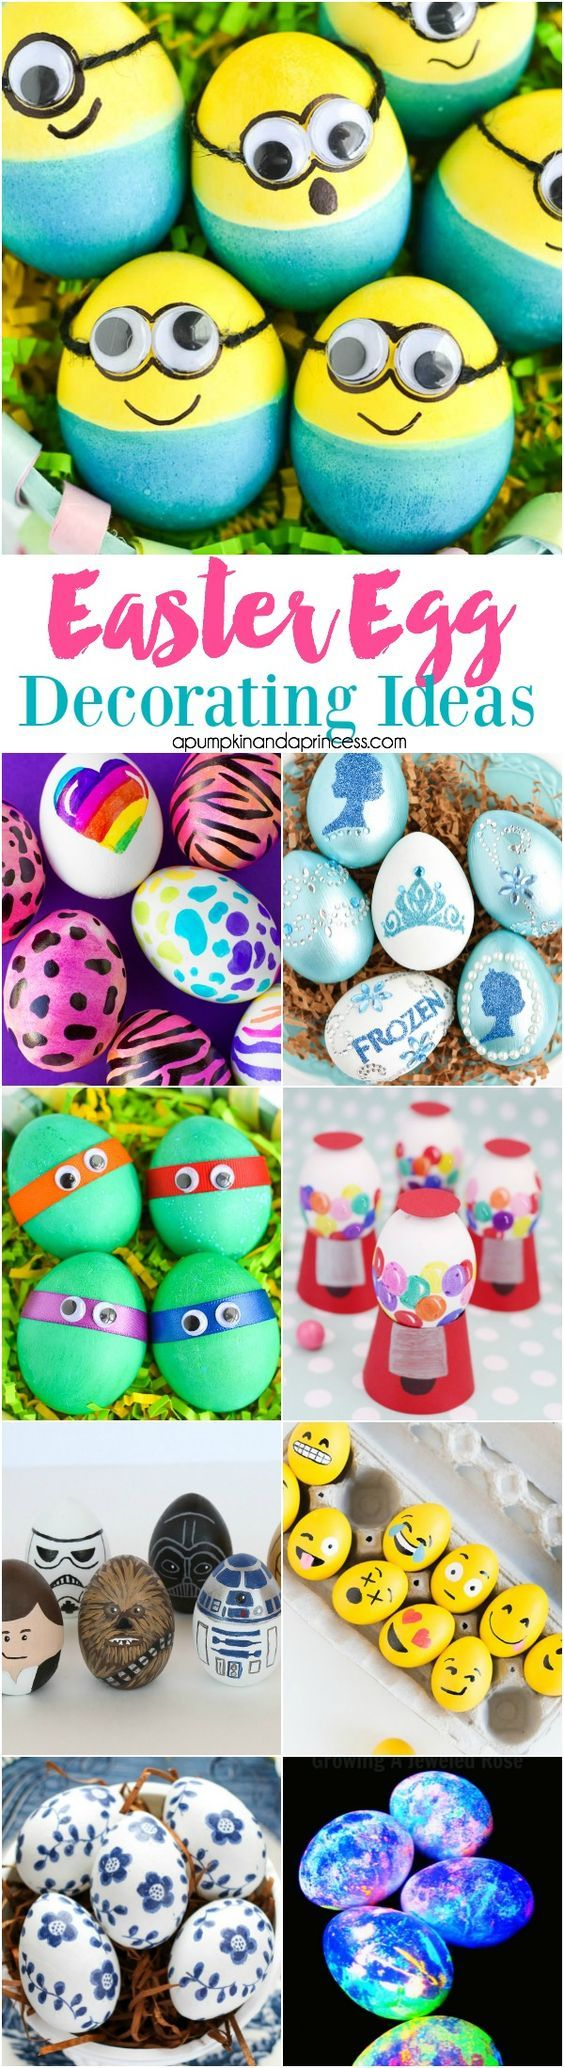 69 Best Easter Images On Pinterest Easter Easter Eggs